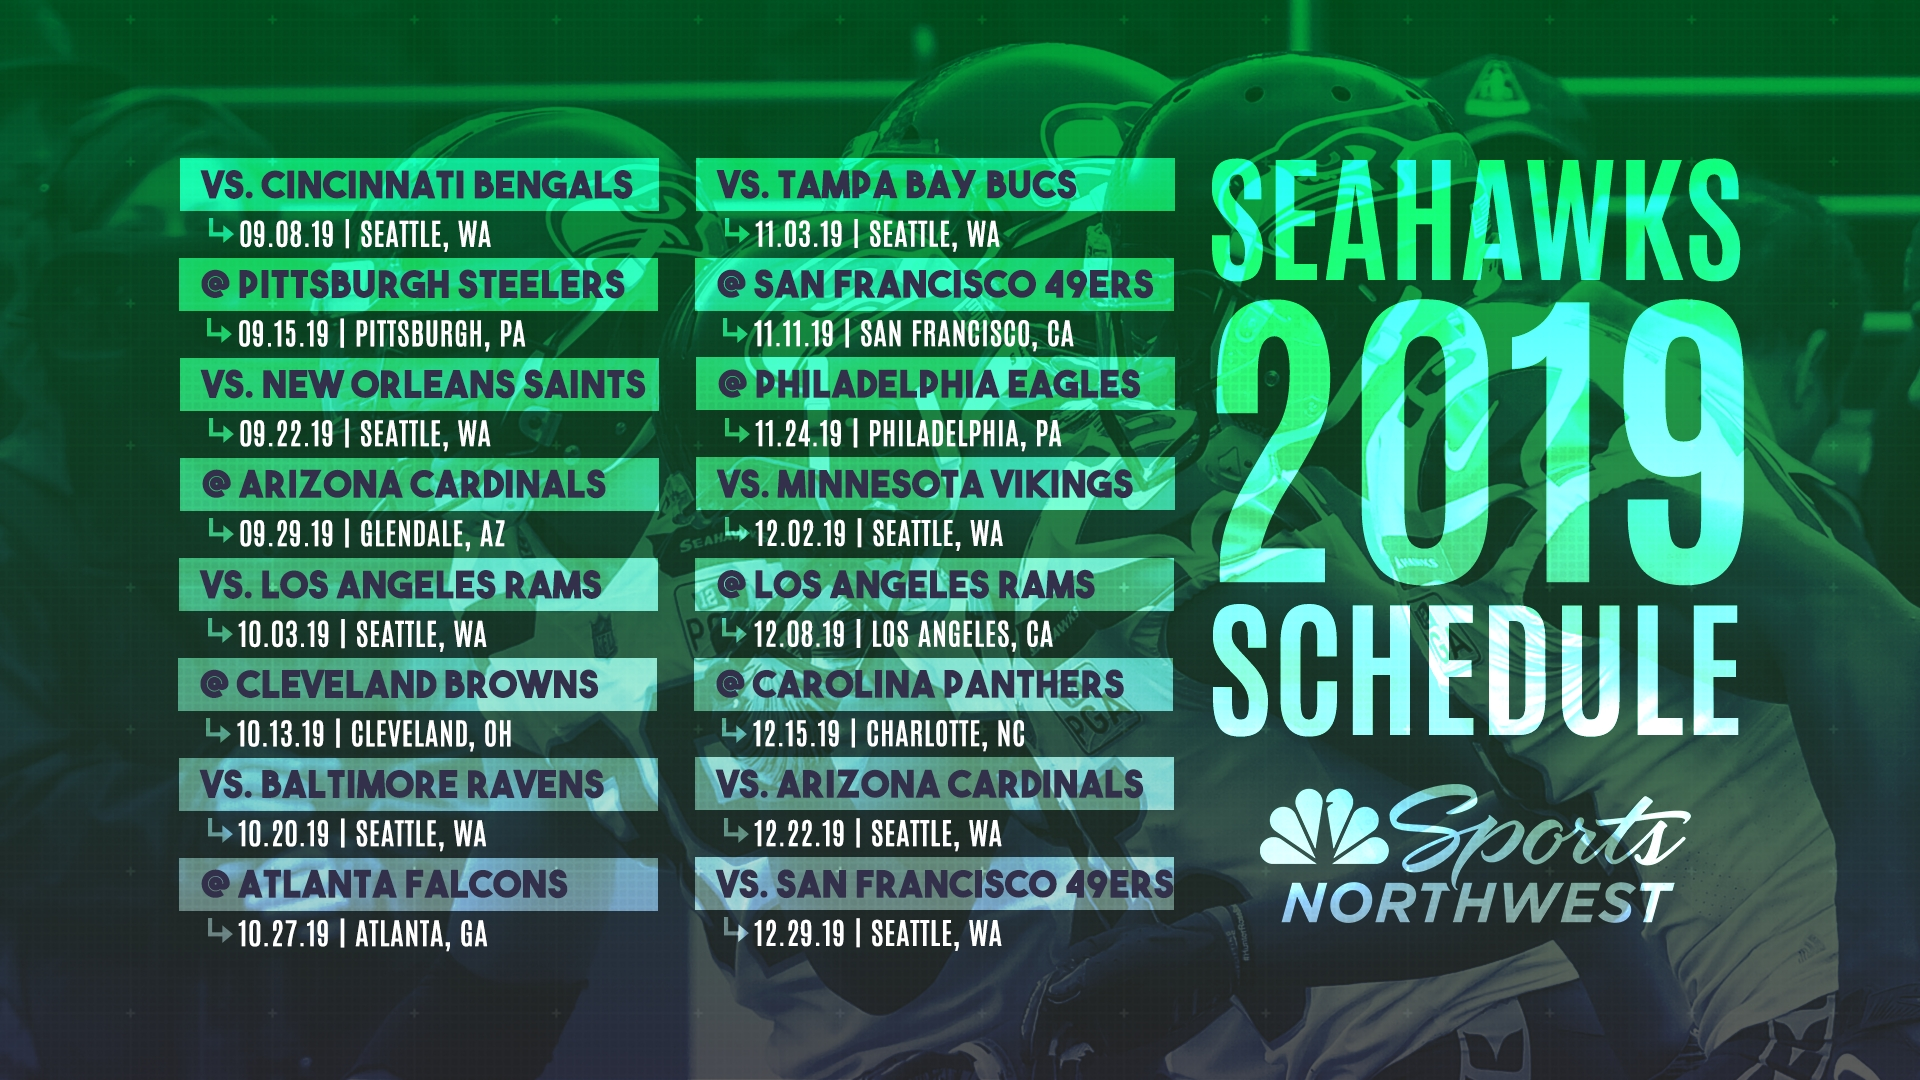 The 2019 Seattle Seahawks Regular Season Schedule Is Here intended for Seahawks 2019 2020 Schedule Printable